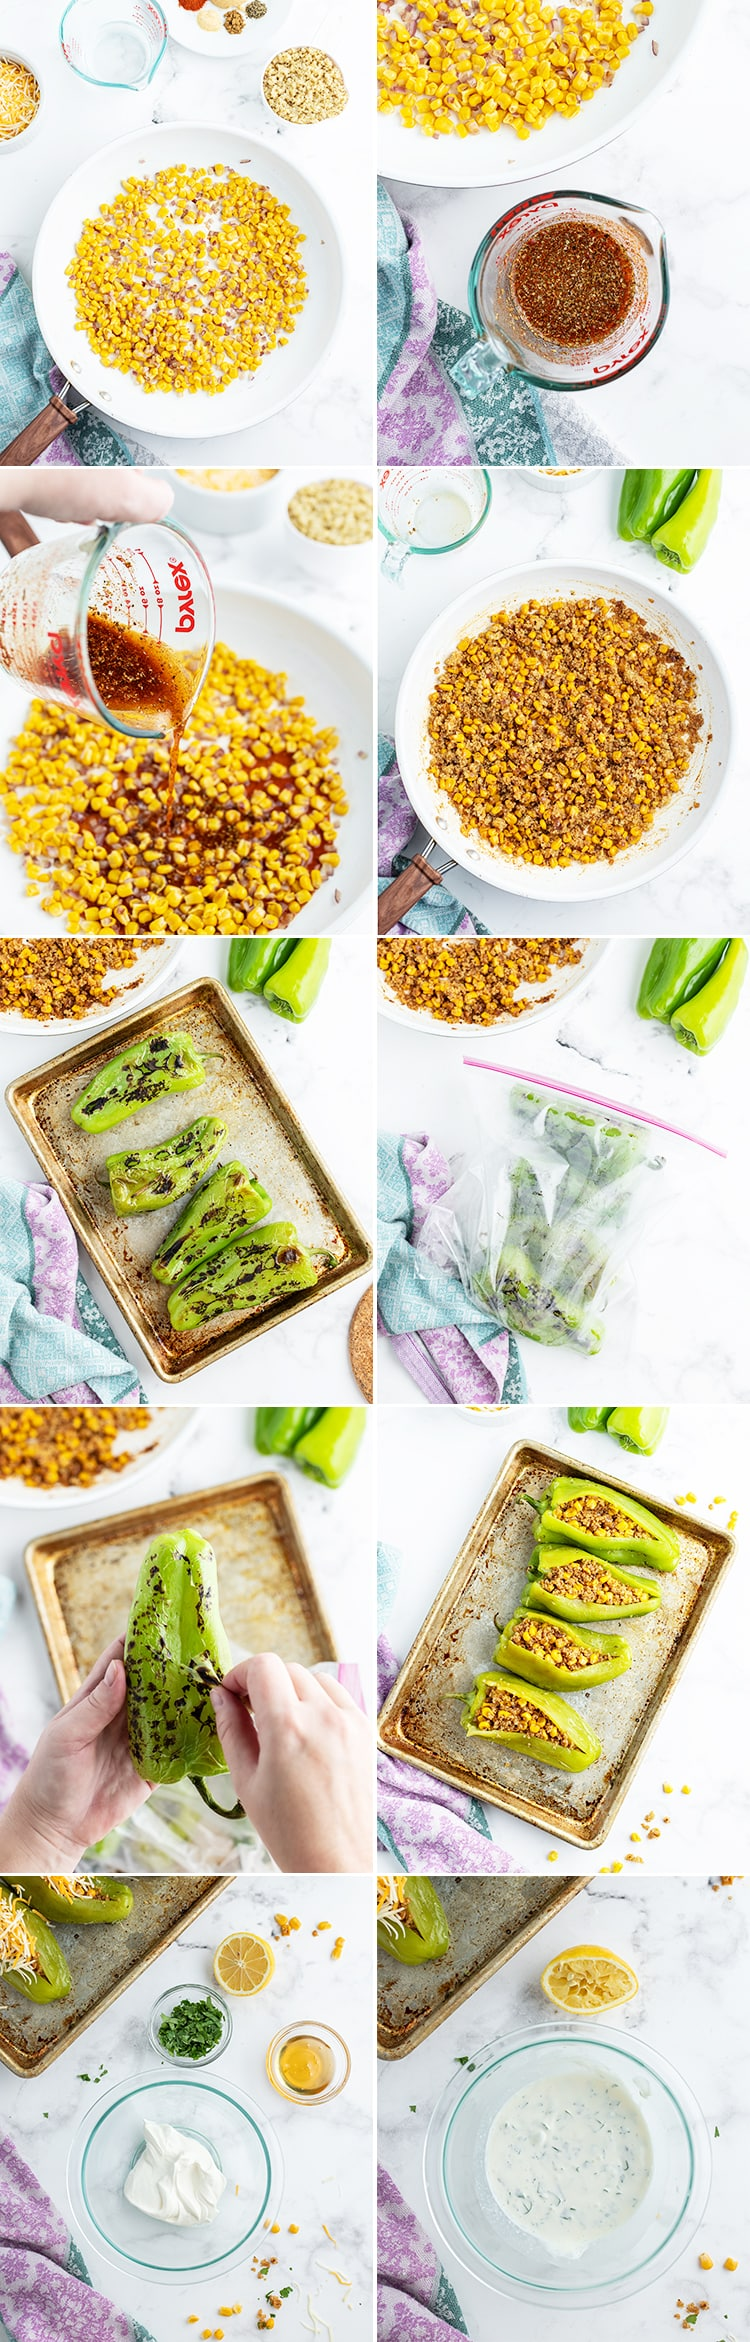 A collage of step by step photos showing how to make stuffed hatch chiles.